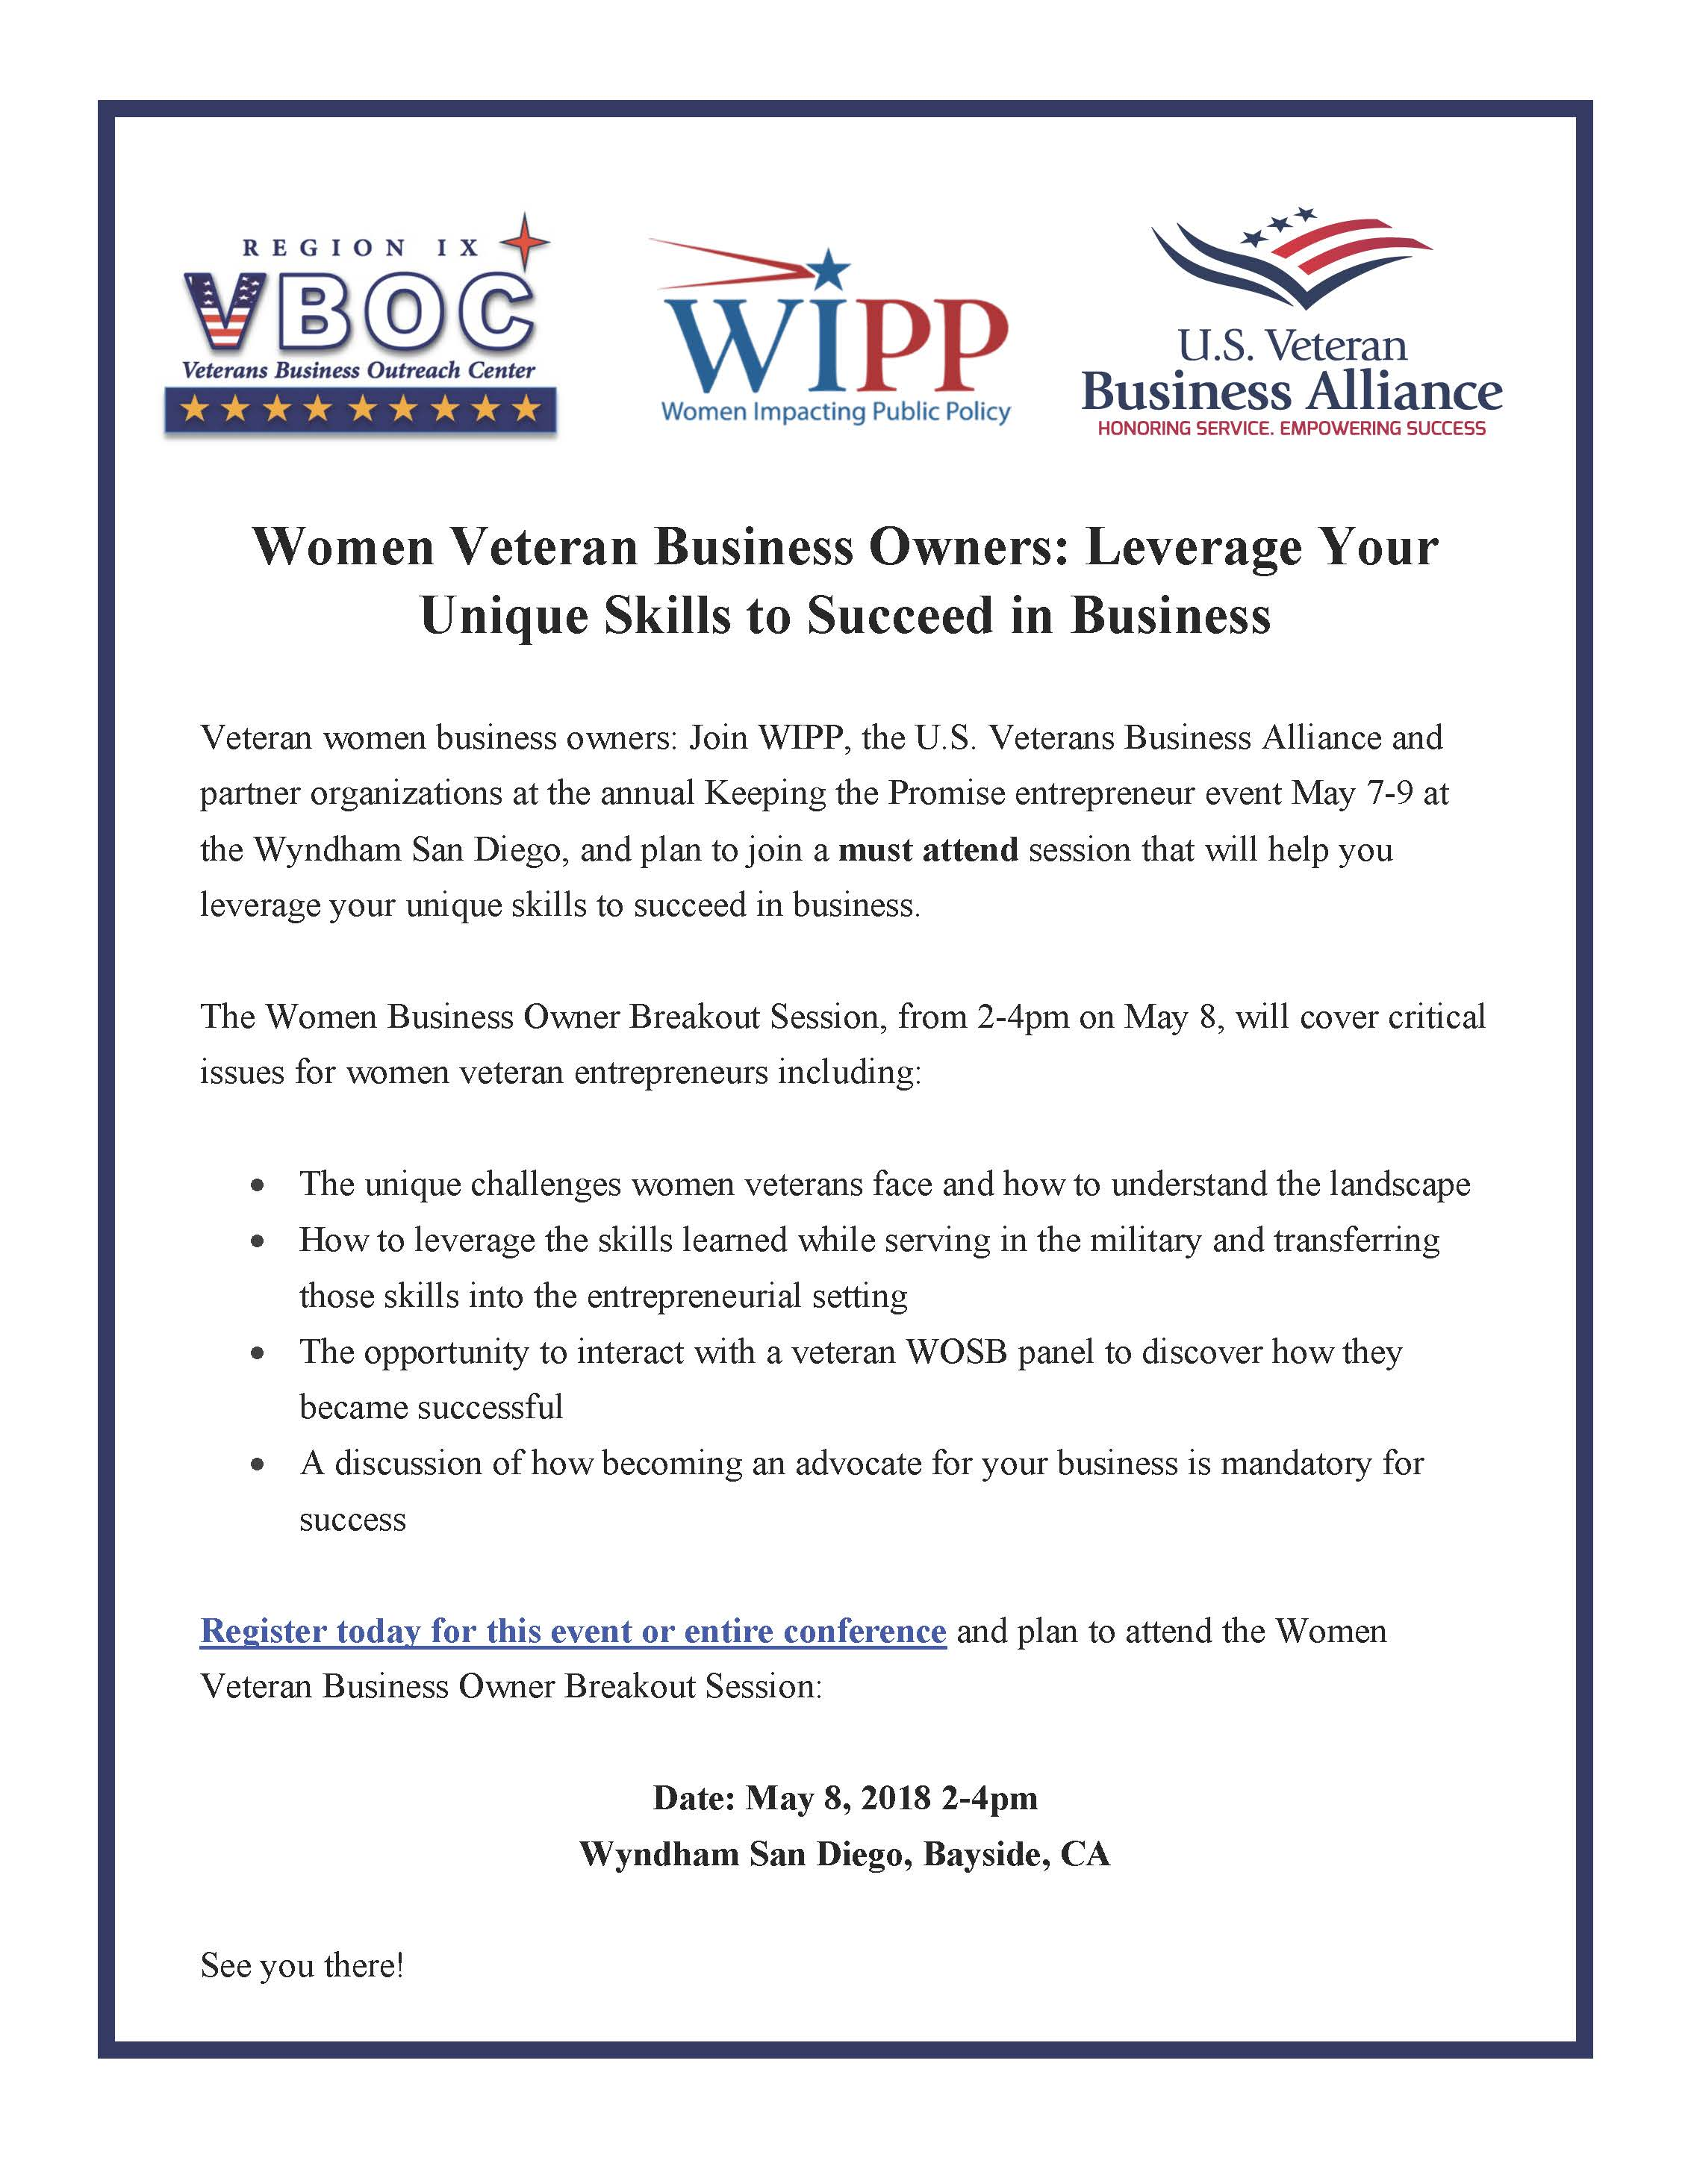 Women Veteran Business Owners: Leverage Your Unique Skills to Succeed in Business